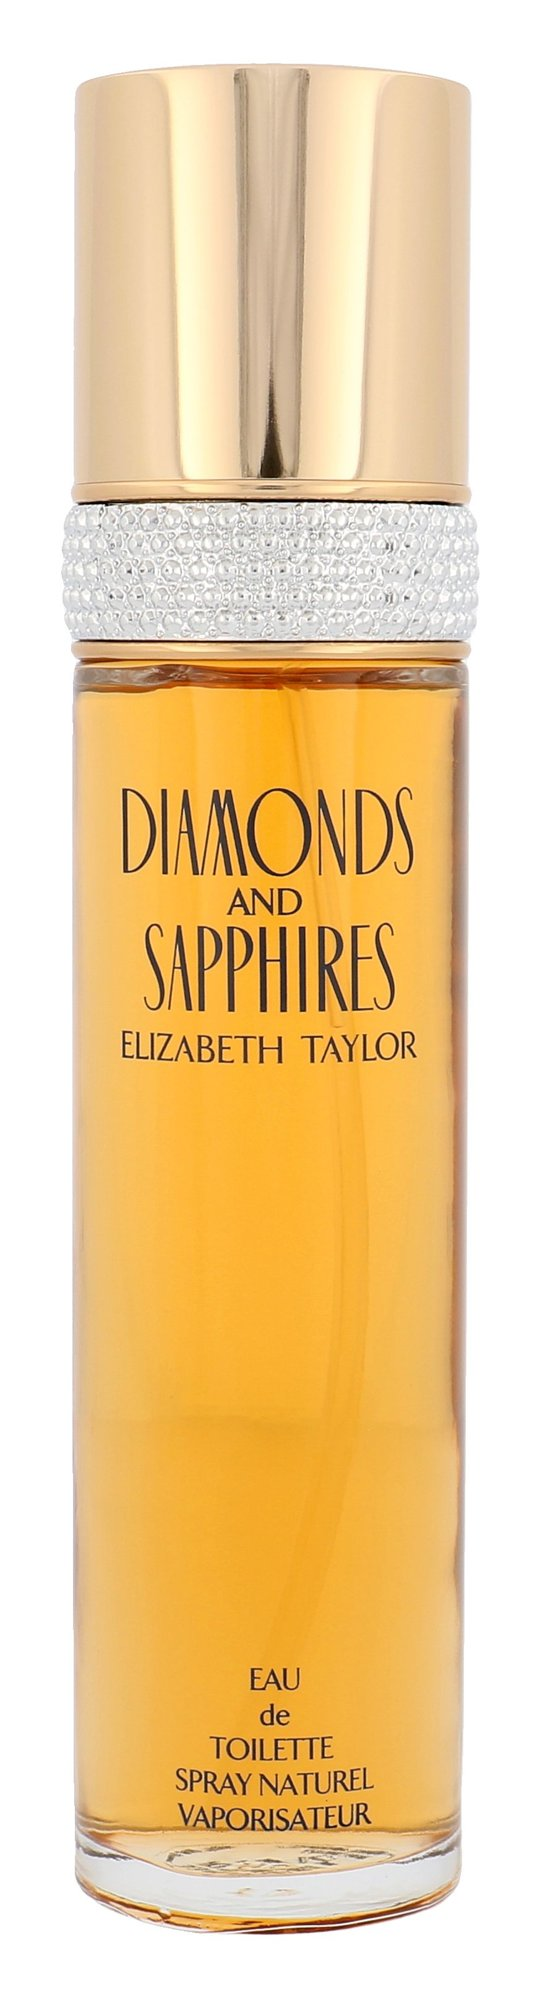 Elizabeth Taylor Diamonds and Saphires EDT 100ml